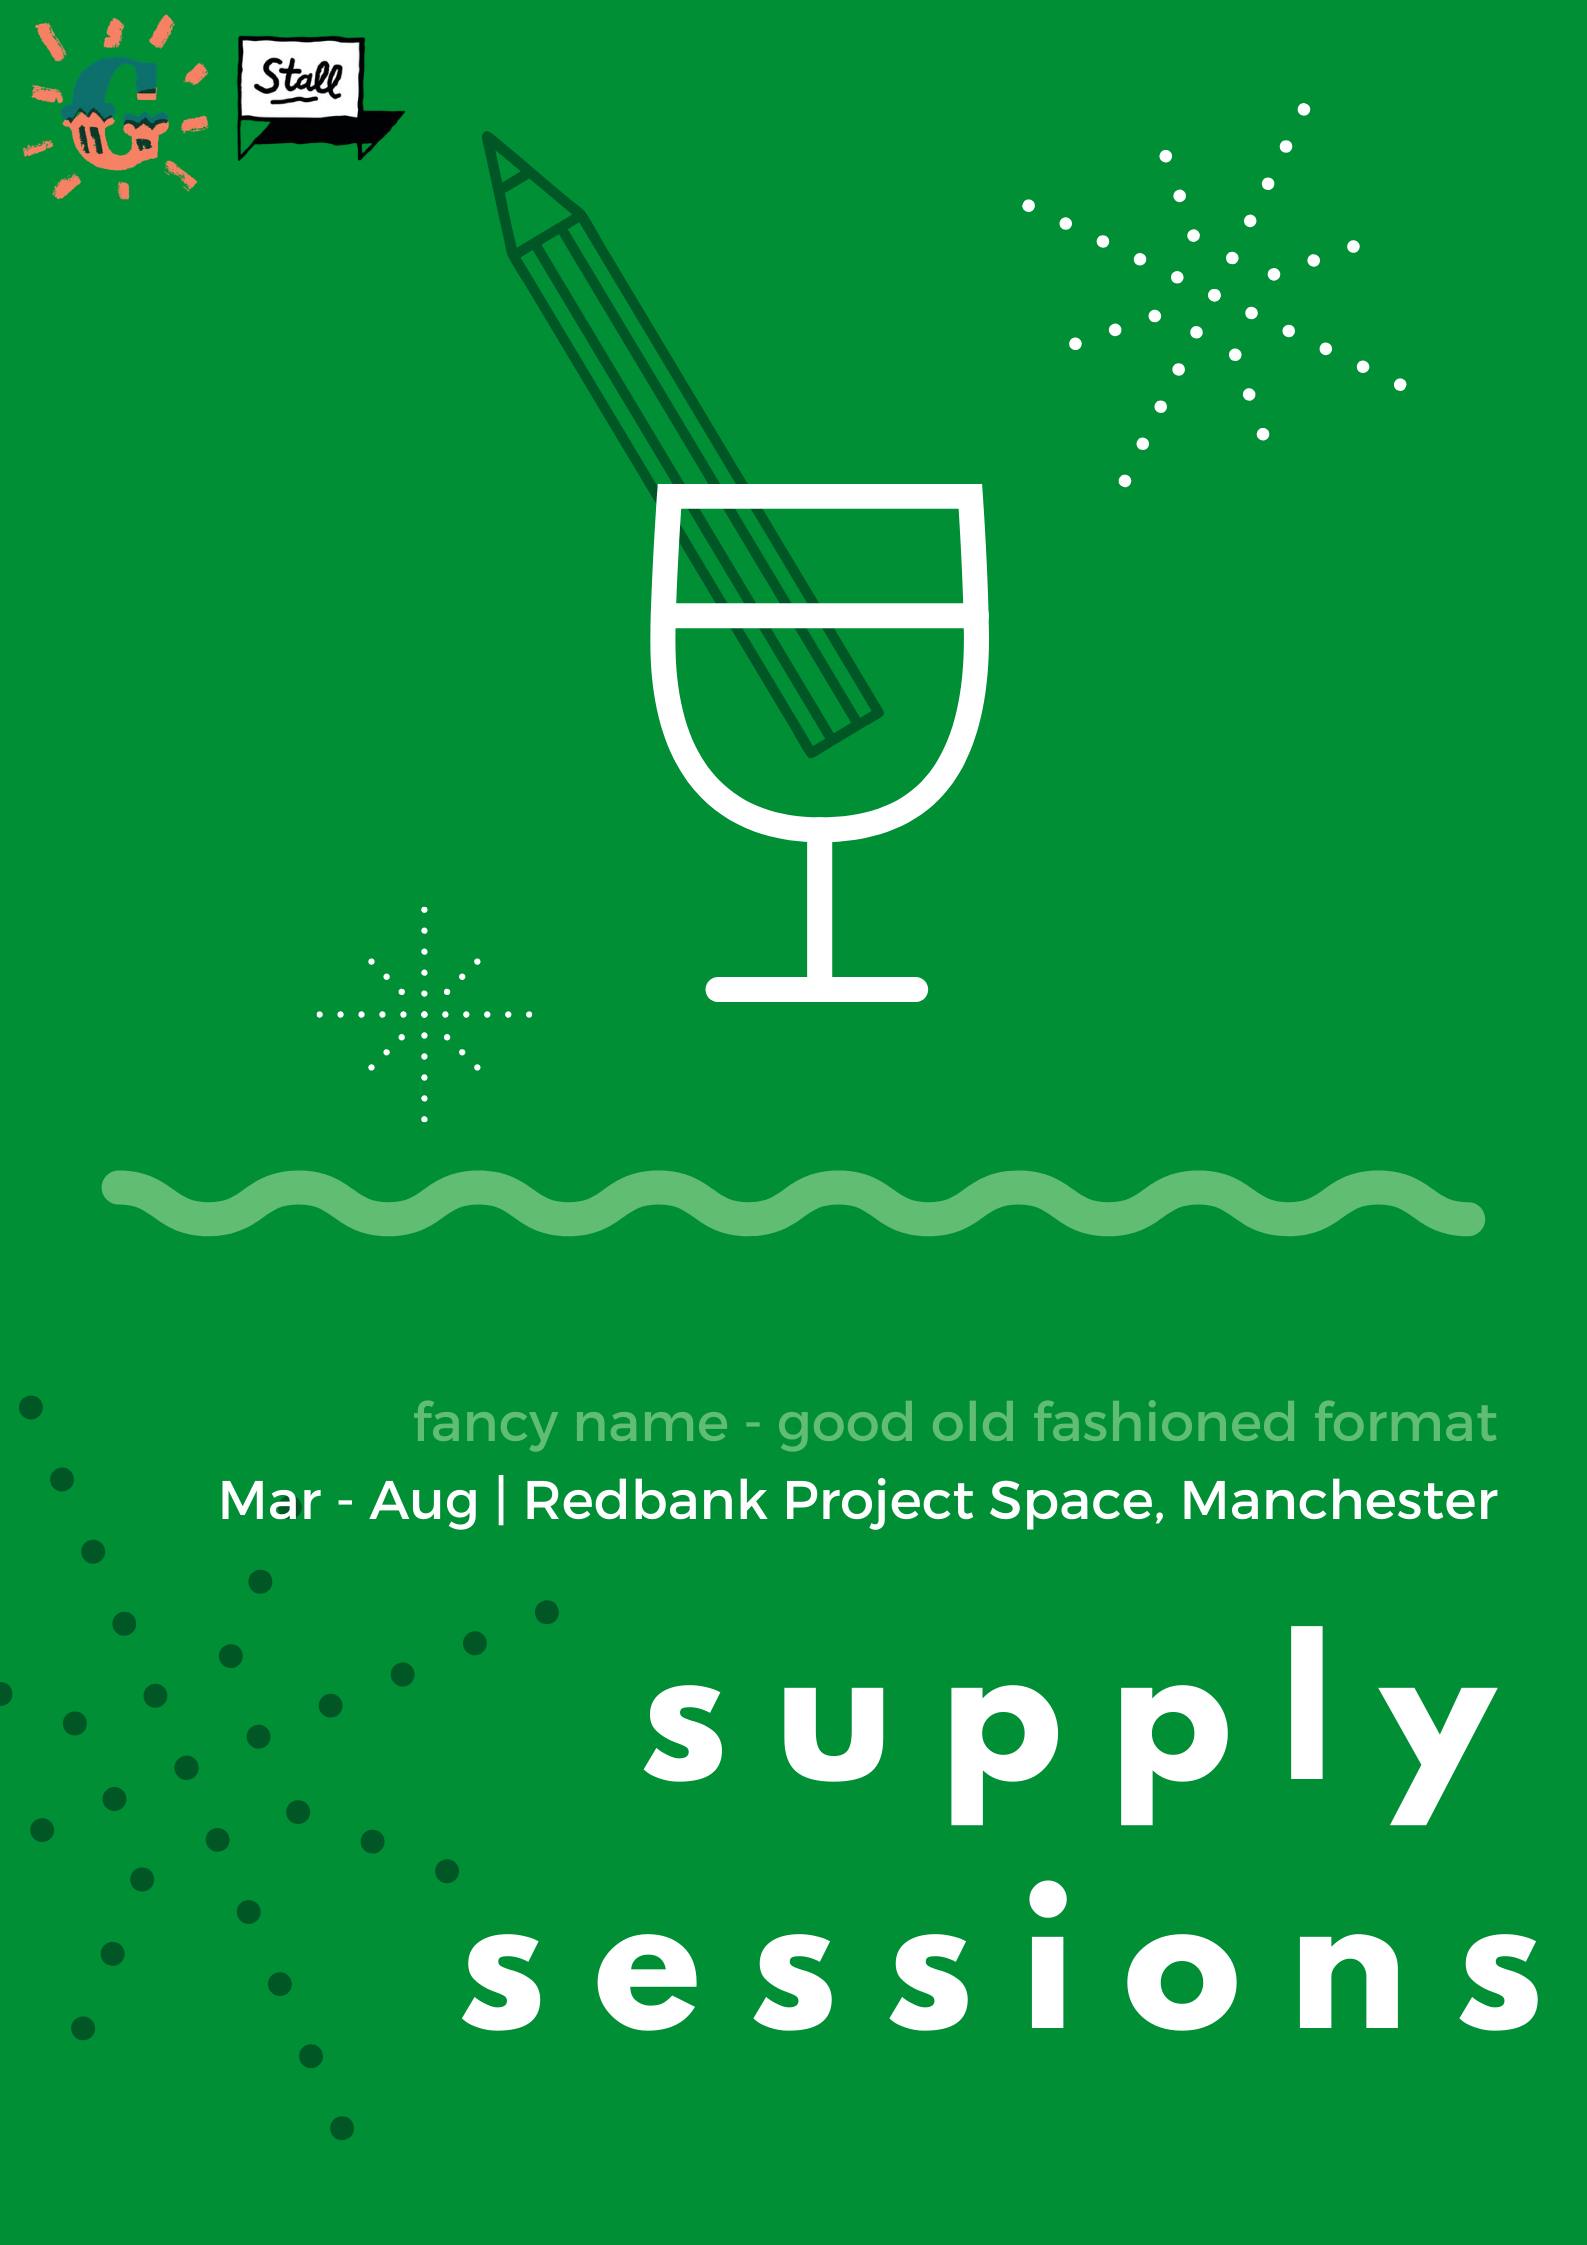 Supply Sessions Poster